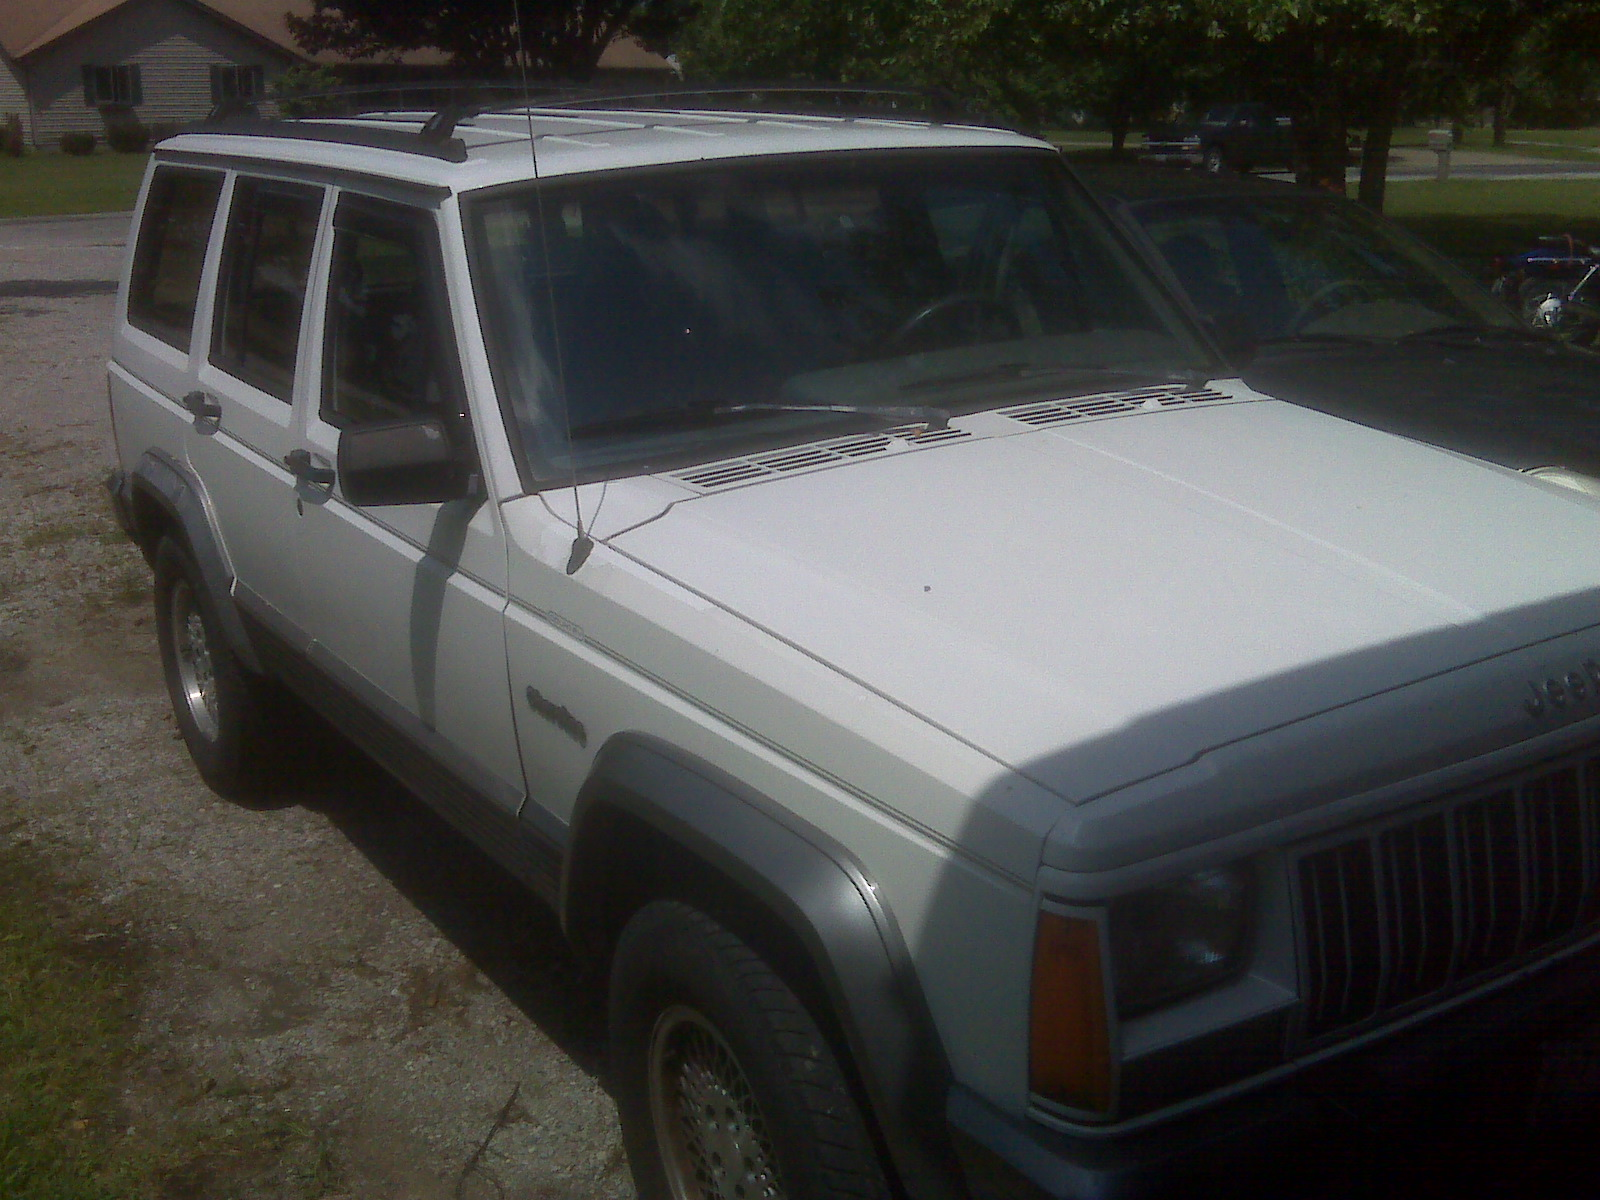 1993 Jeep Cherokee 4 Dr Country SUV picture, exterior